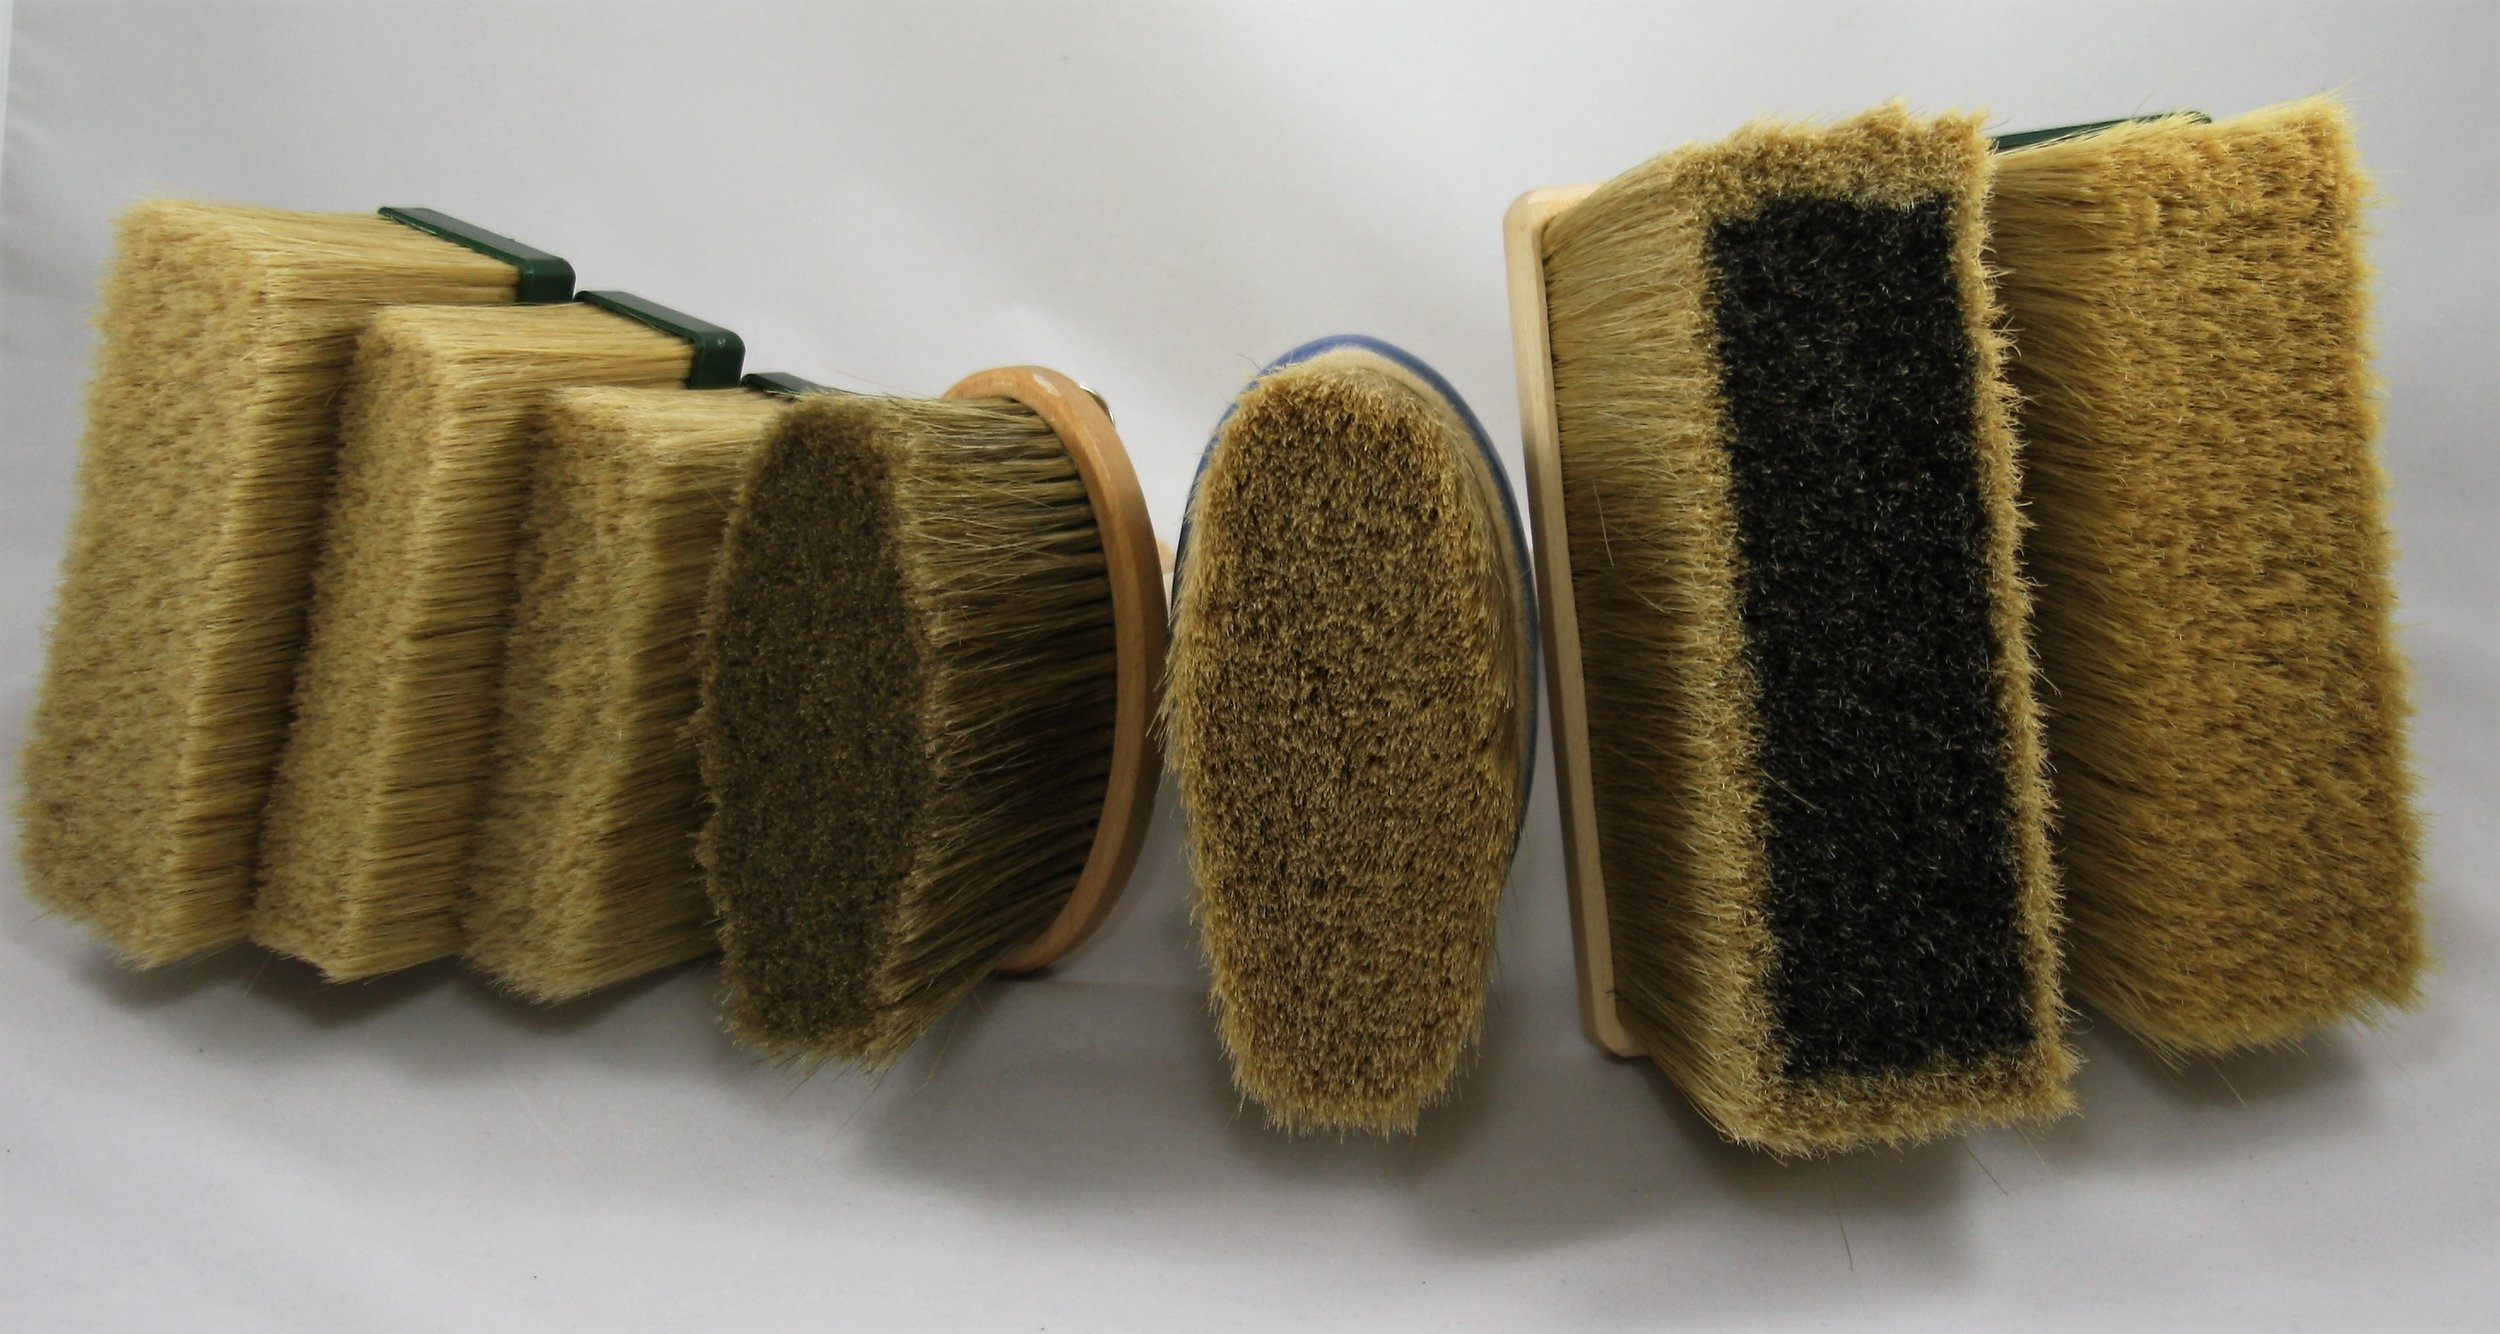 From left to right: Large, Medium and Small Tradesman, Small Lasur Brush, Large Lasur Brush, Premium Mineral Facade Brush, Standard Mineral Facade Brush